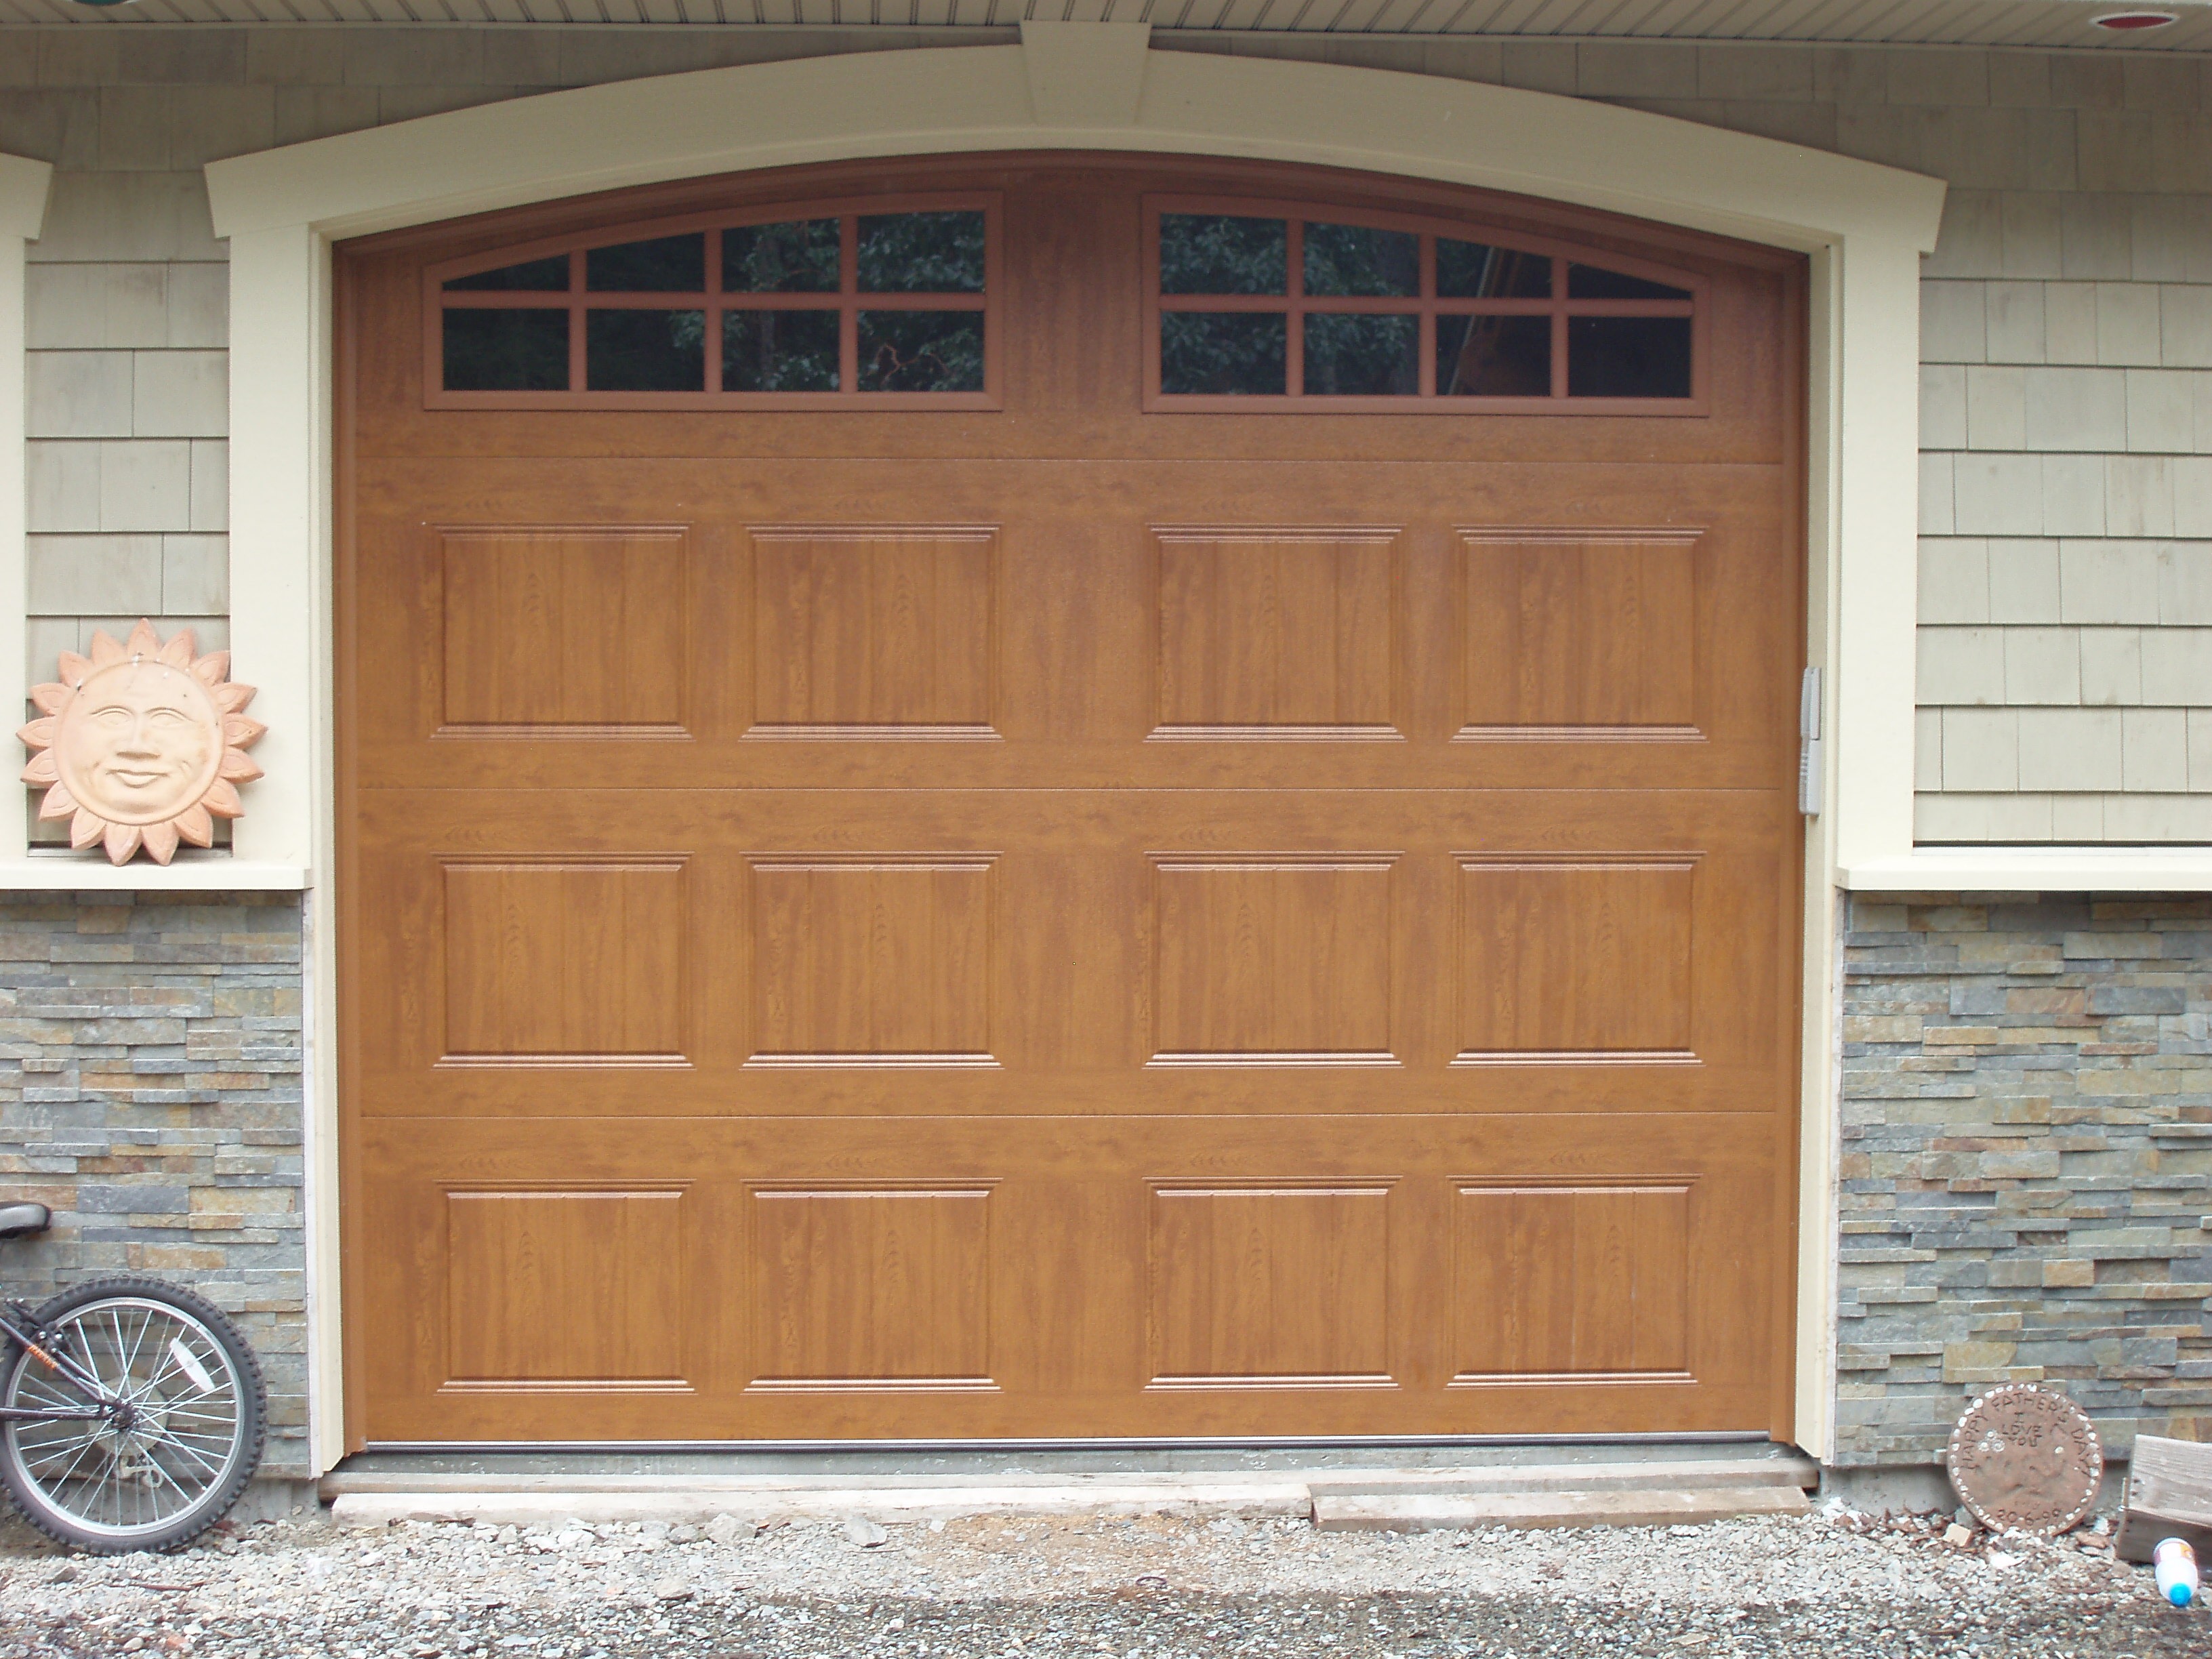 2448 #8D633E GD05 Clopay Gallery Series Door Short Panel With Long Panel Arch 1  picture/photo Gallery Garage Doors 35893264